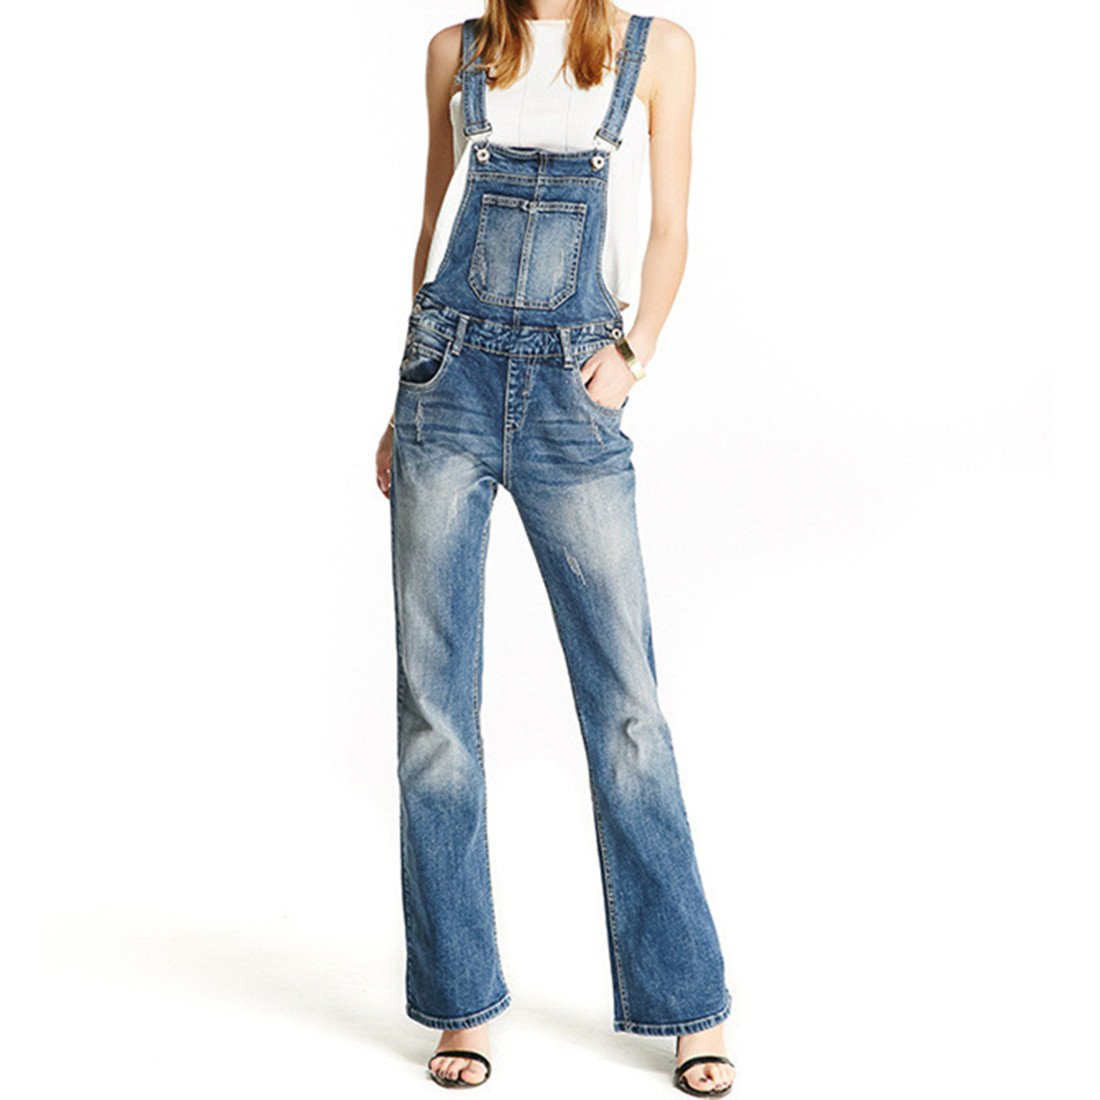 Women Clothing Blue Flares Bib Denim Overalls (XL, Blue)